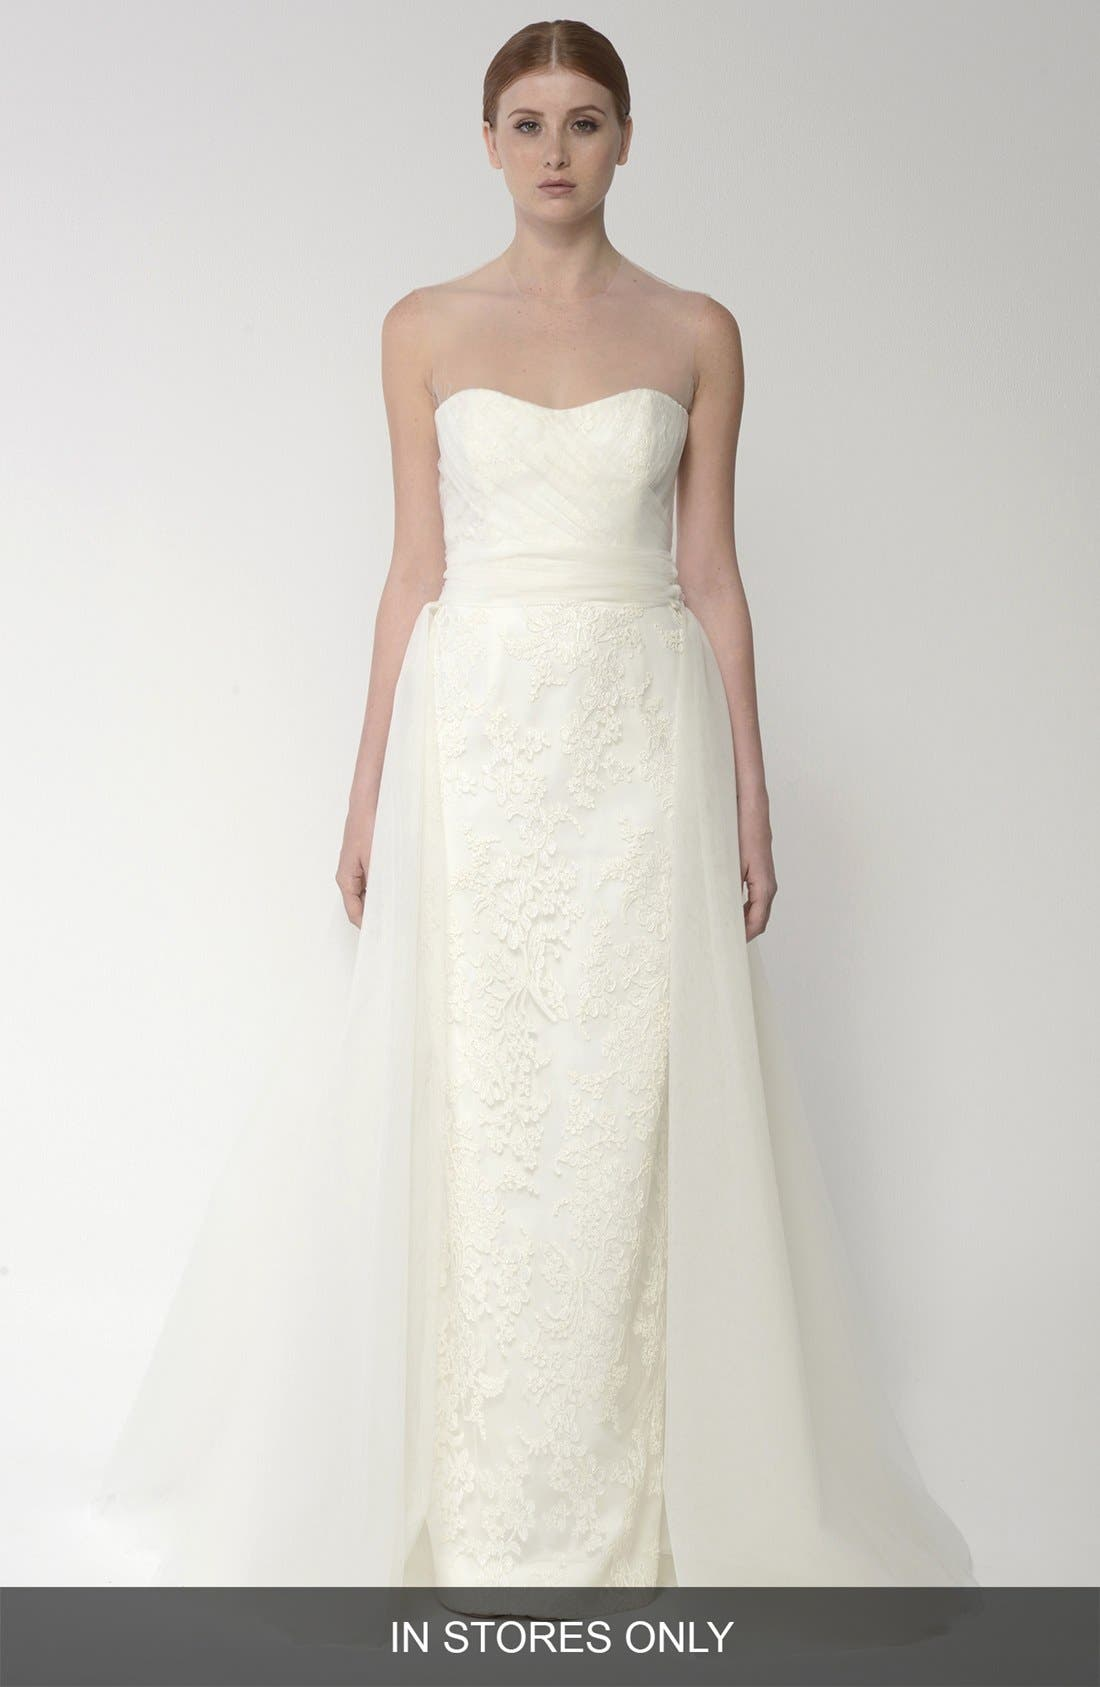 Alternate Image 1 Selected - BLISS Monique Lhuillier Embroidered Lace Gown with Detachable Tulle Overskirt